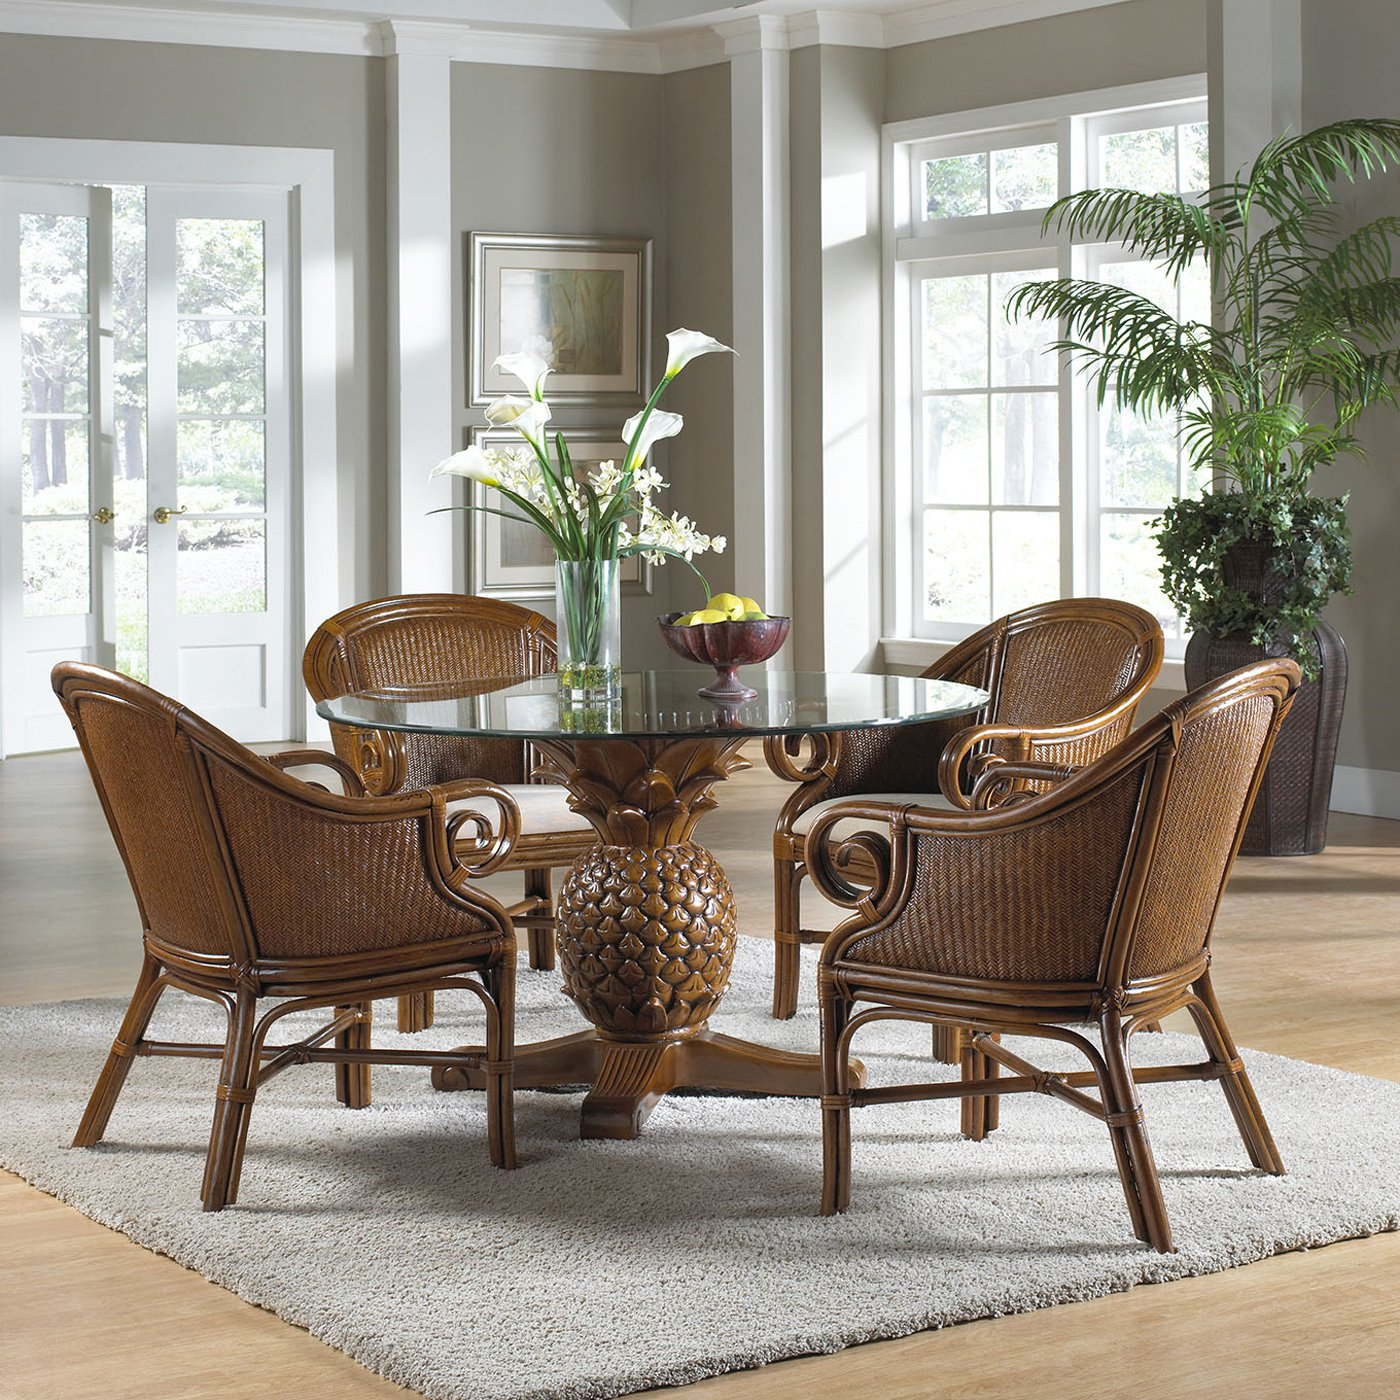 Image of: retro style of wicker dining chairs